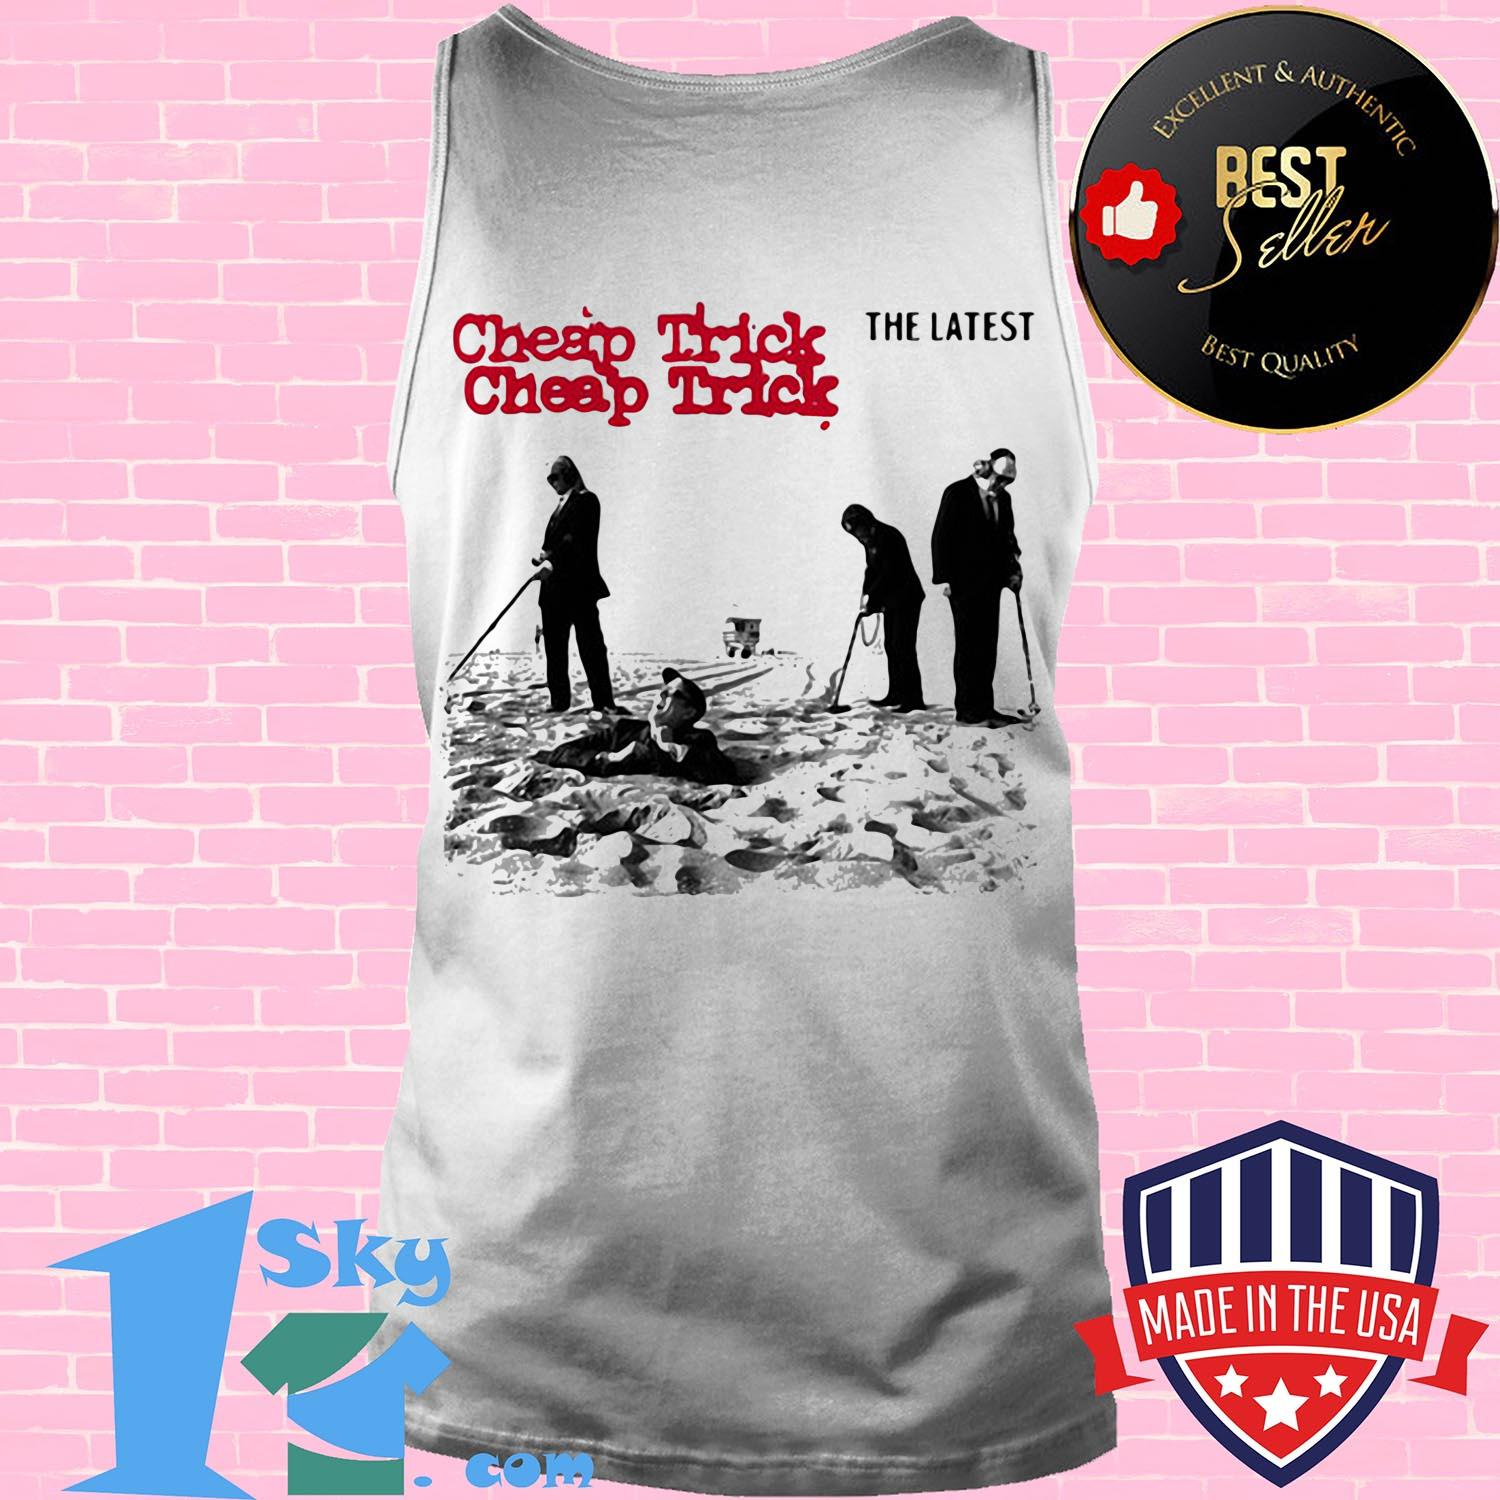 cheap trick the latest rock band tank top - Cheap Trick The Latest Rock Band shirt